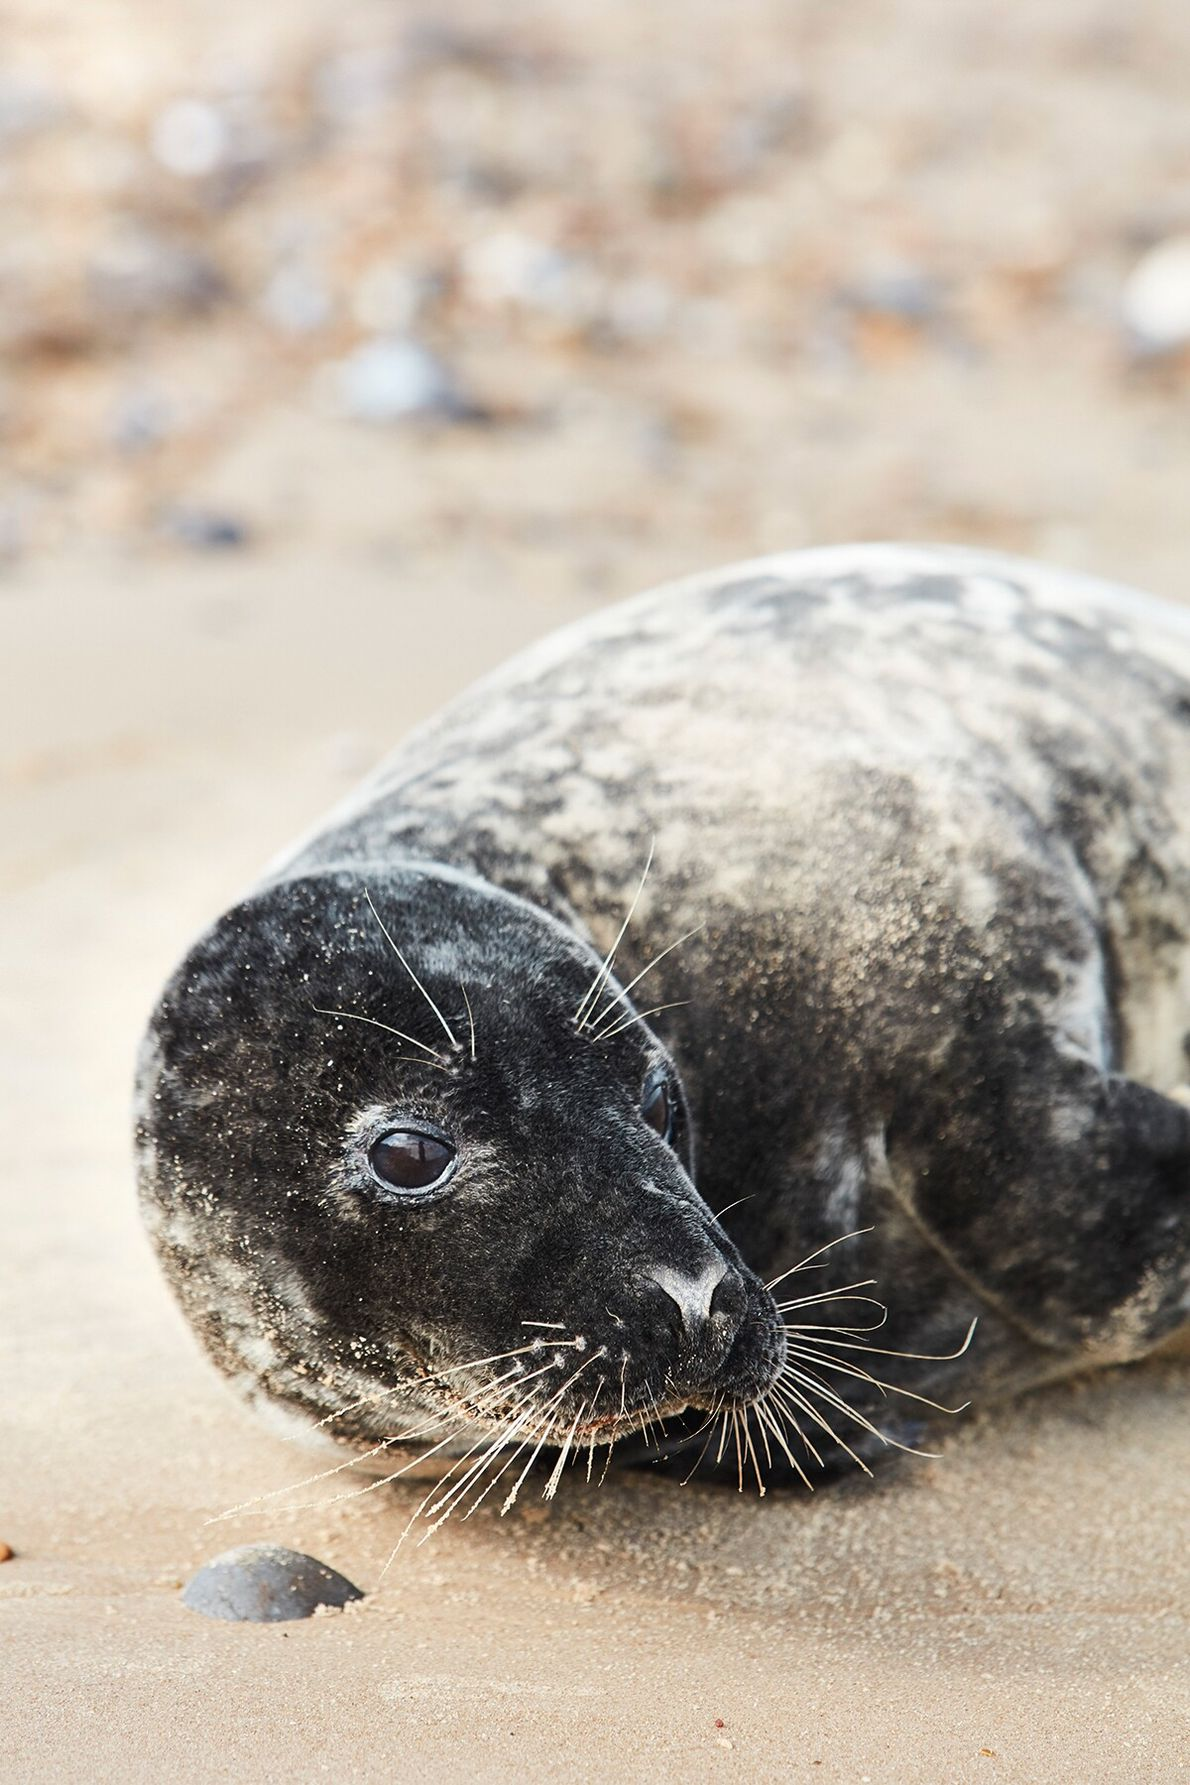 Blakeney is the gateway to the Blakeney National Nature Reserve, home to the largest grey seal ...